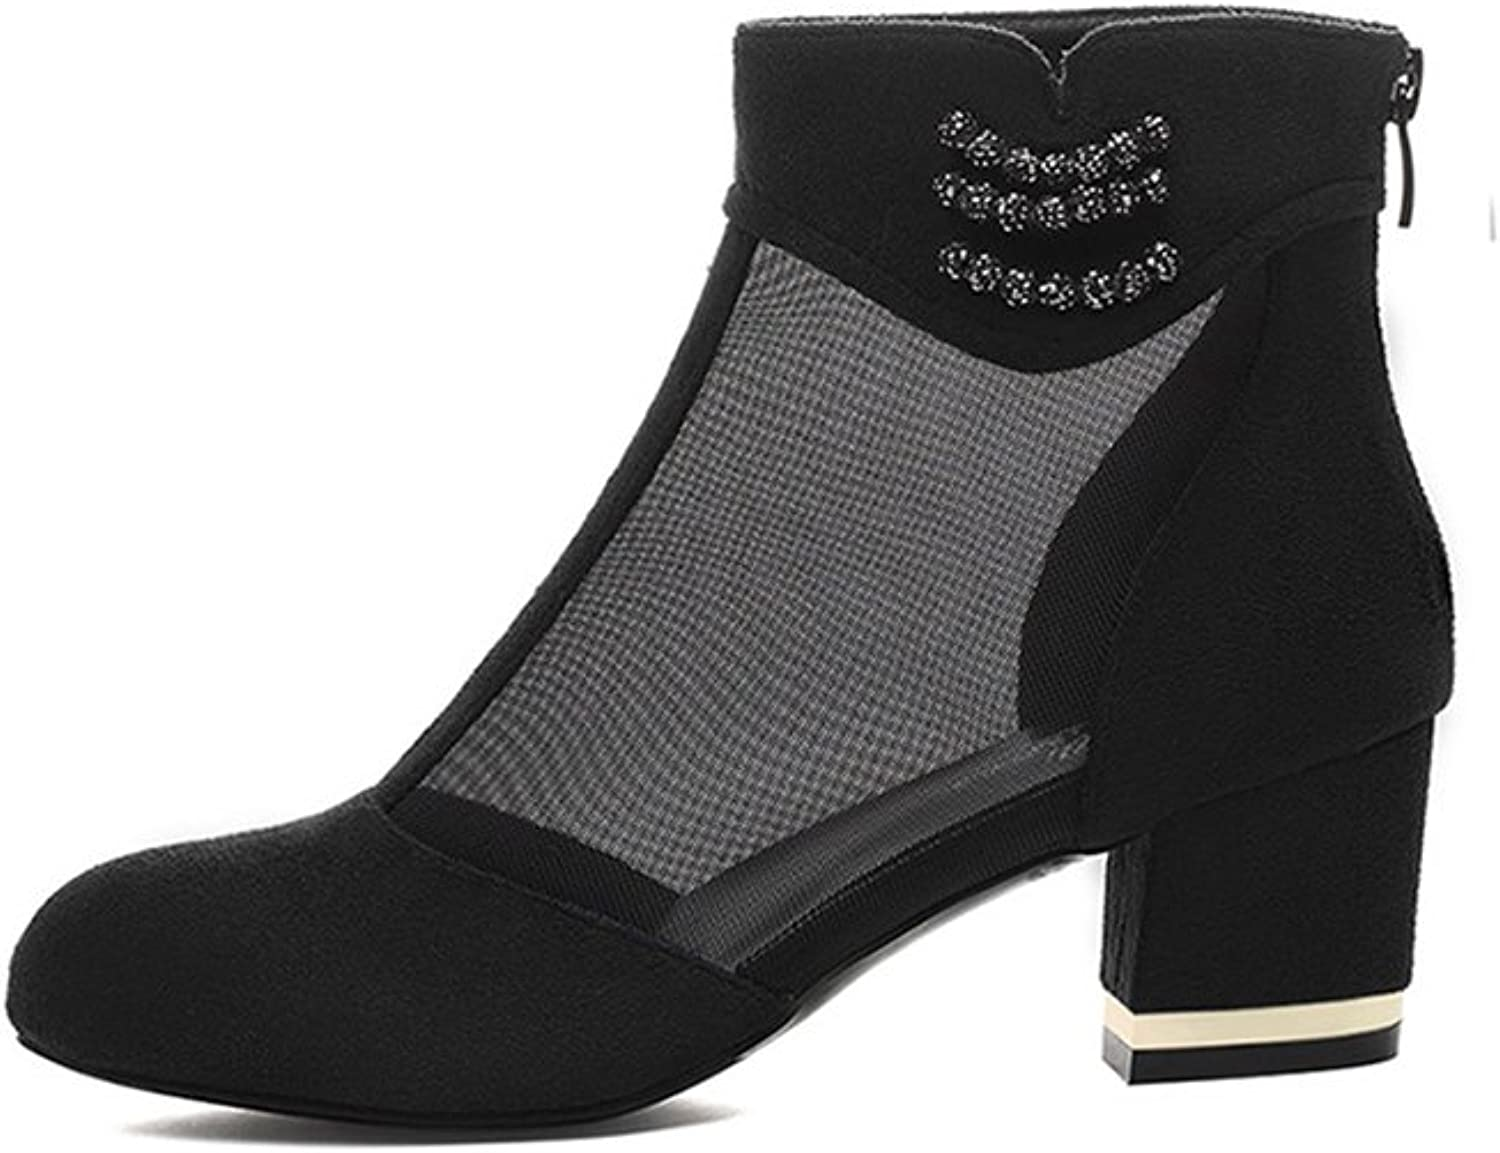 XUERUI Joker New Single shoes Spring shoes Spring Summer High Heel with Thick with High Heels (color   Black, Size   EU36 UK3.5 CN35)